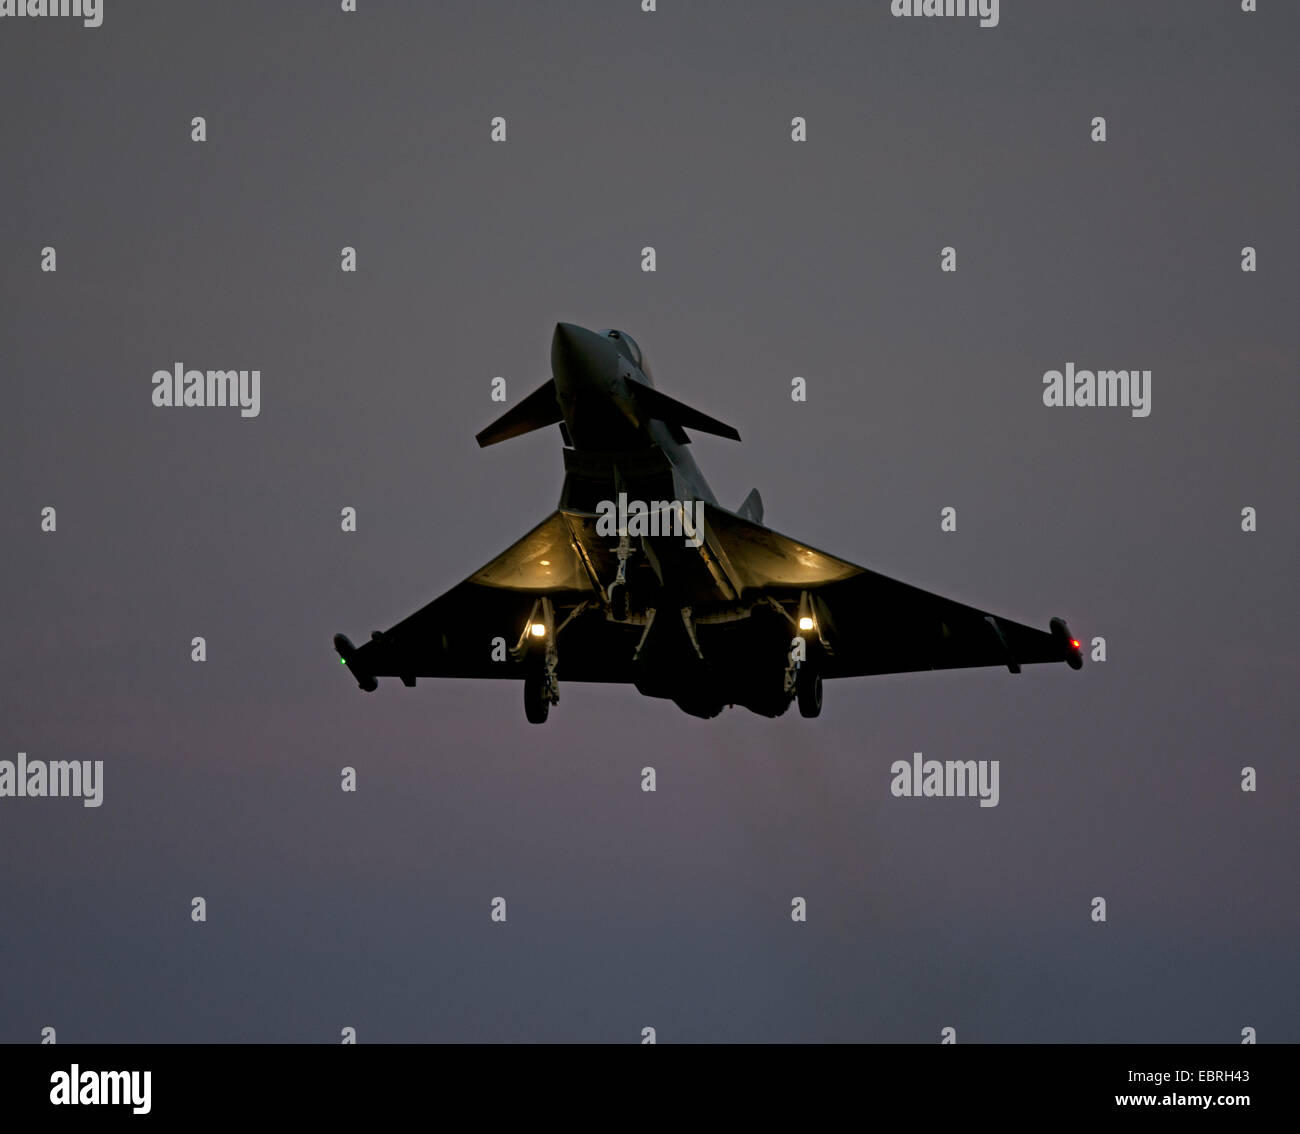 Eurofighter Typhoon FRG4 Military Jet Fighter returning from an afrternoon sortie at RAF Lossiemouth air base. SCO - Stock Image